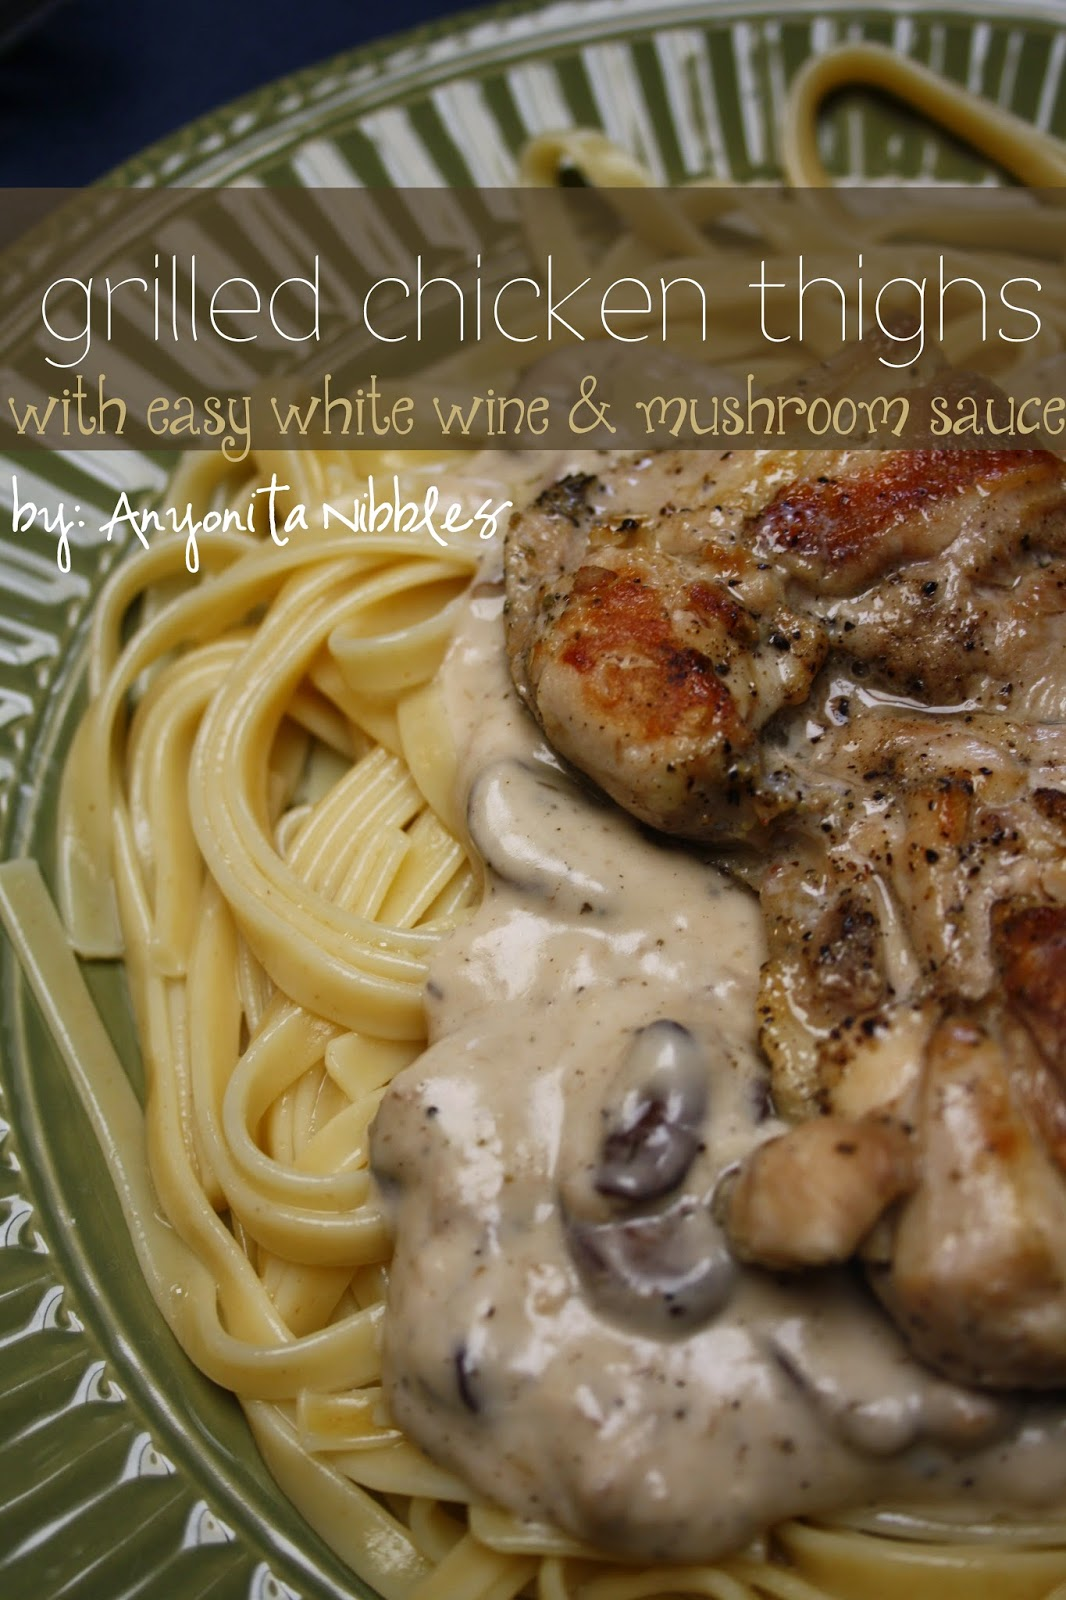 Grilled Chicken Thighs with Easy White Wine & Mushroom Sauce | Anyonita Nibbles